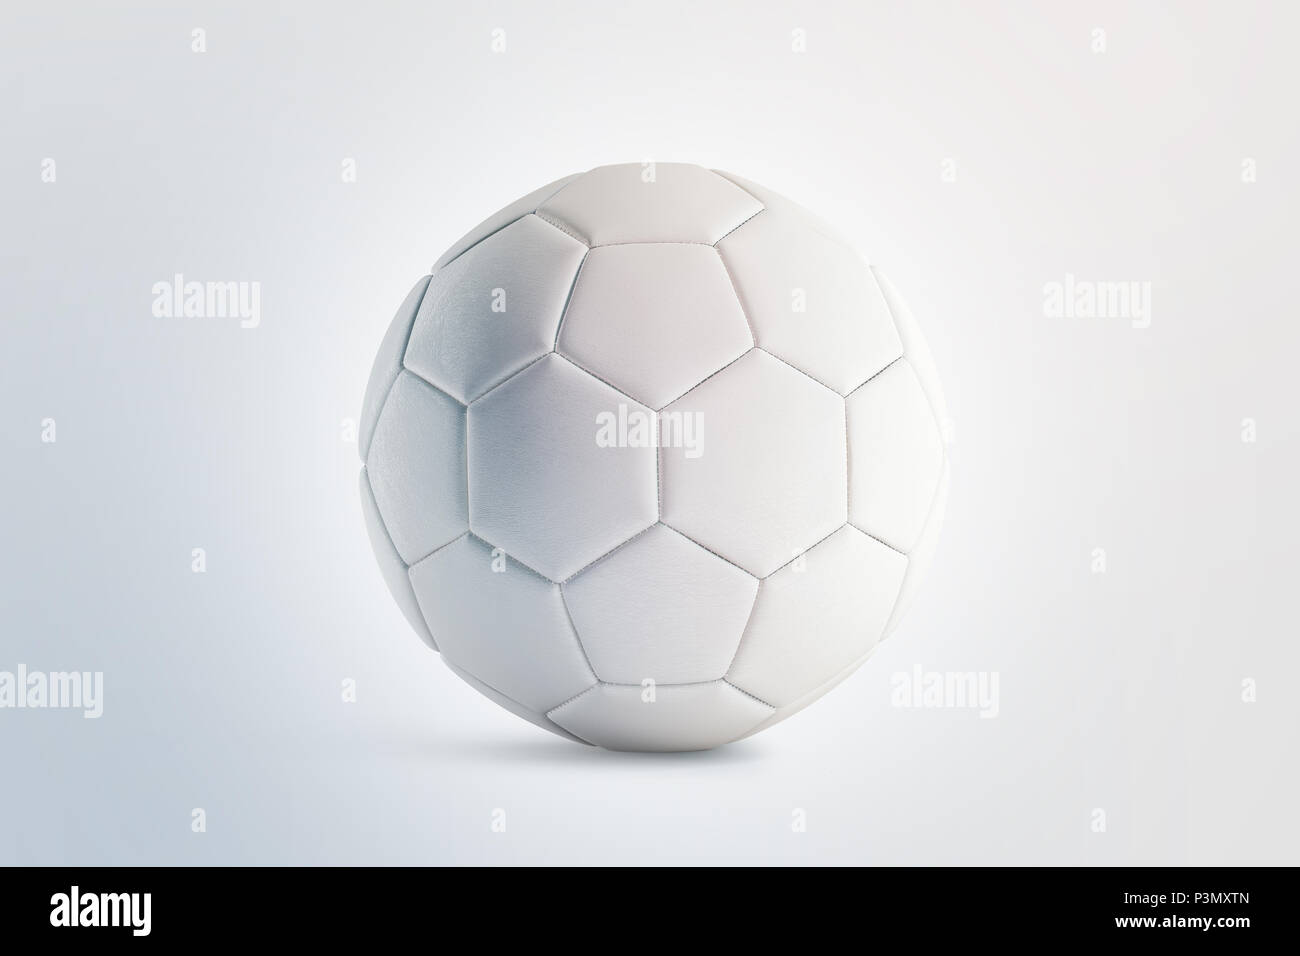 Blank White Soccer Ball Mock Up Front View 3d Rendering Empty Football Sphere Mockup Isolated Clear Sport Bal For Playing On The Clean Field Template